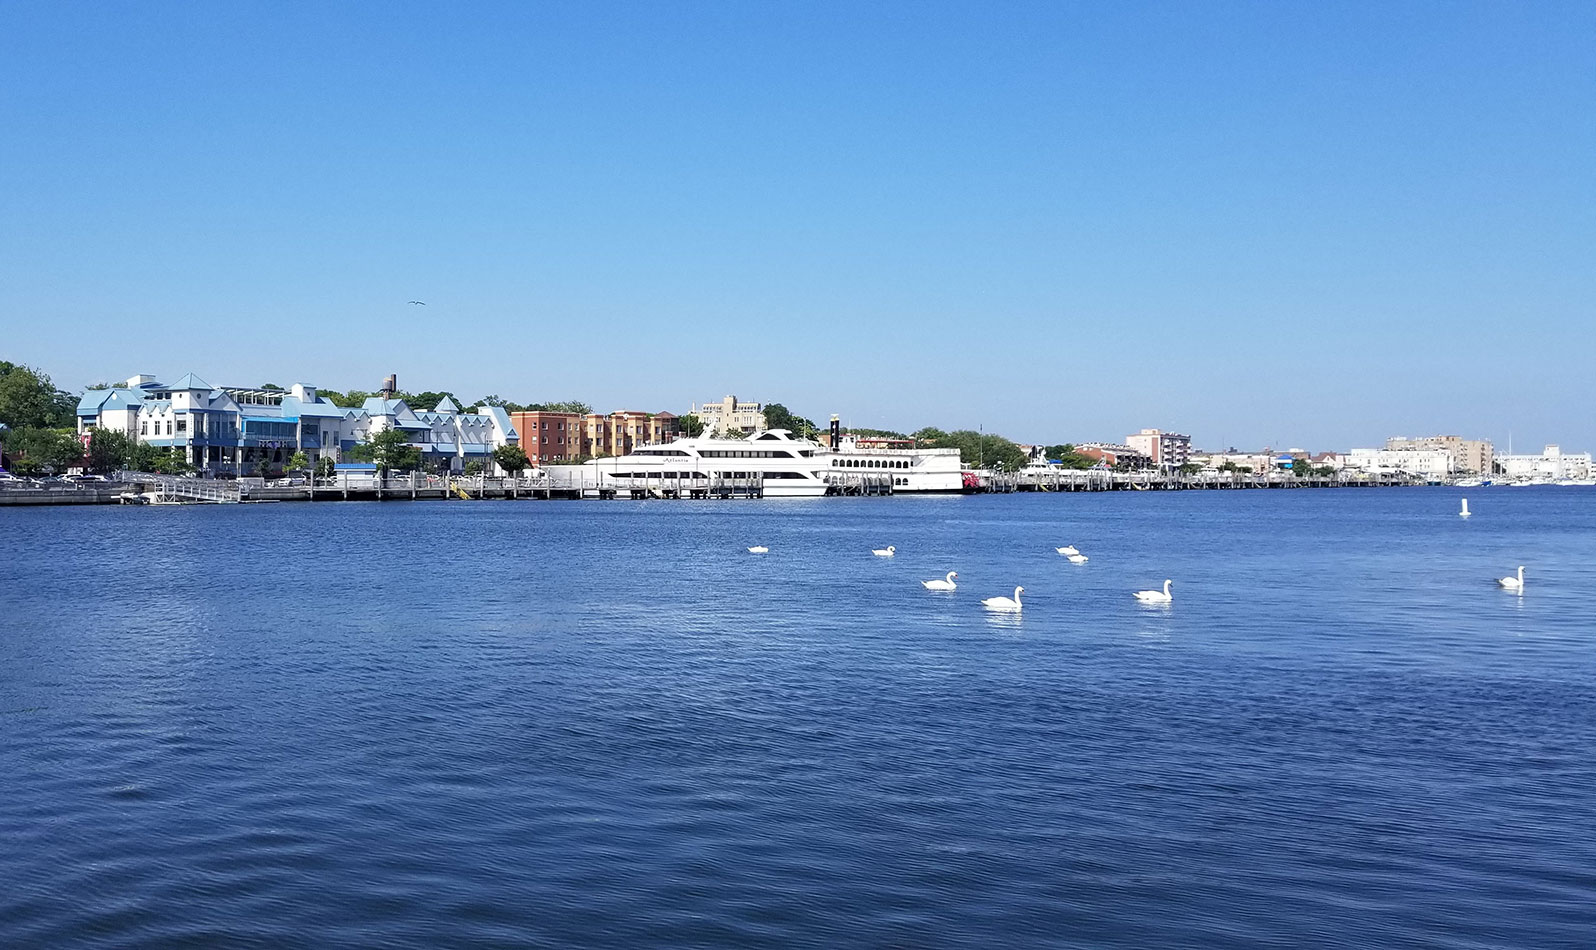 If you have more time to explore, head to Shore Boulevard for a stroll along Sheepshead Bay Piers. Be sure to take photos on the Ocean Avenue Pedestrian Bridge, which spans the bay!